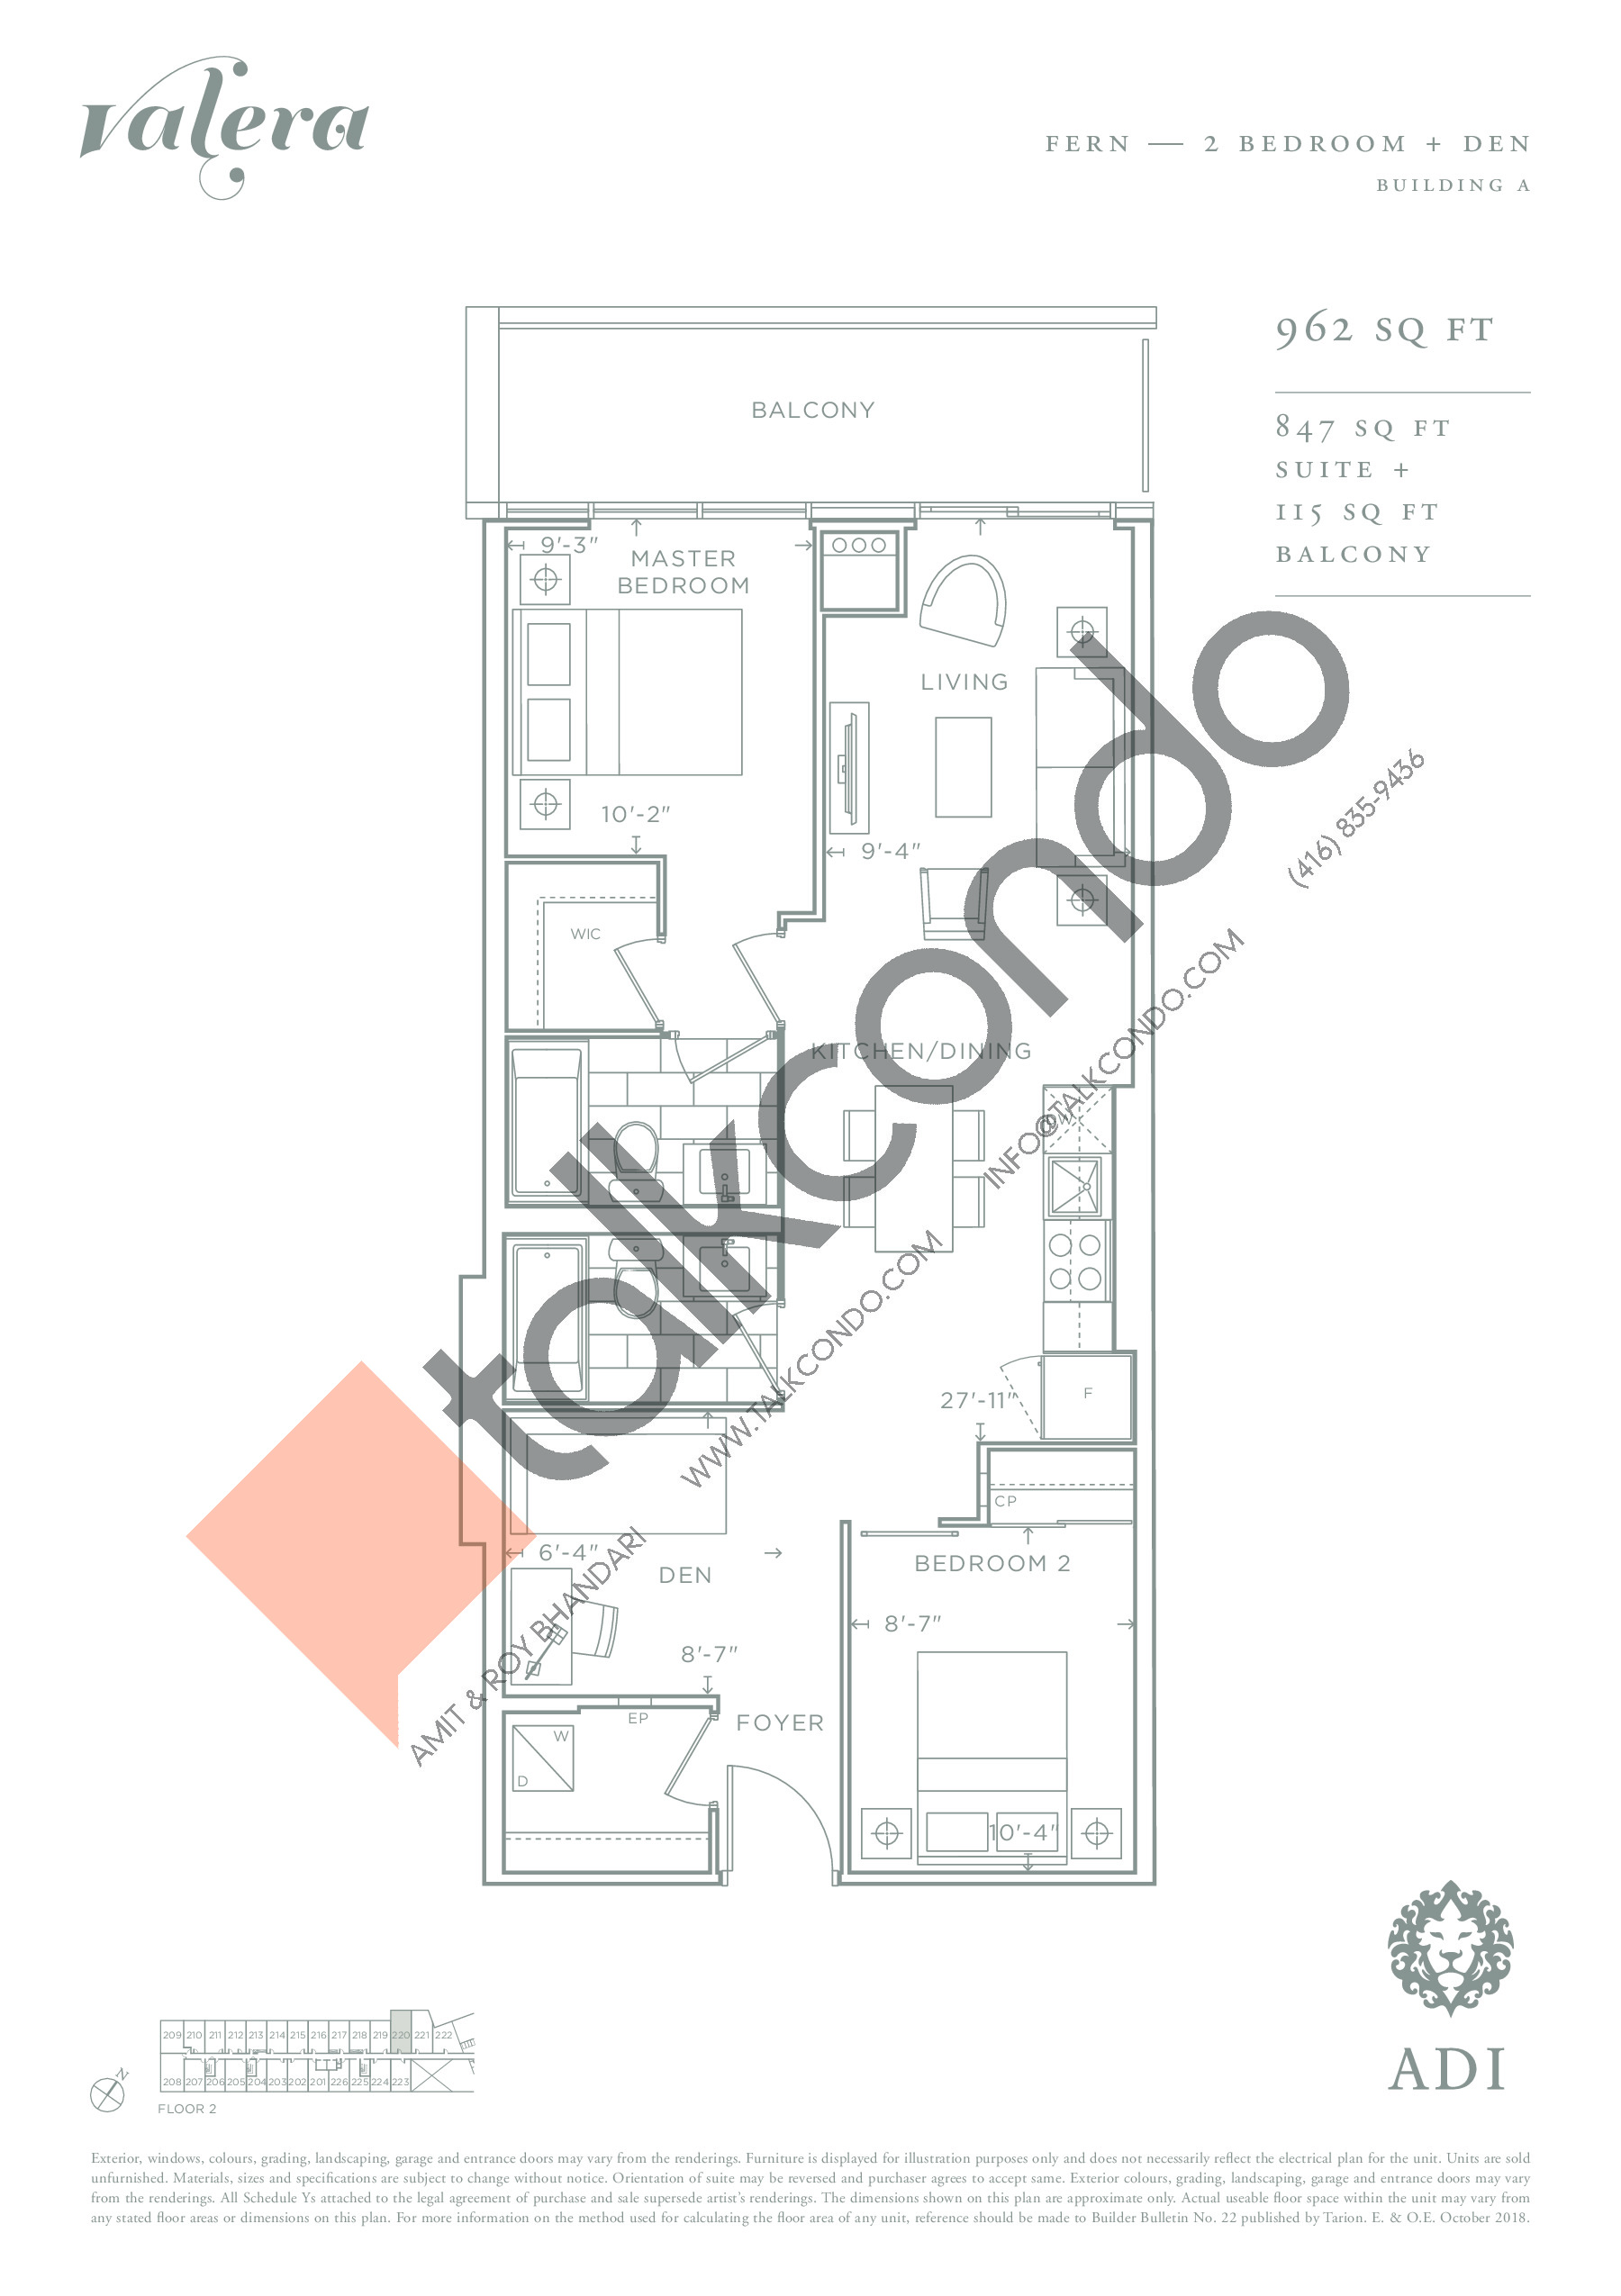 Fern Floor Plan at Valera Condos - 847 sq.ft